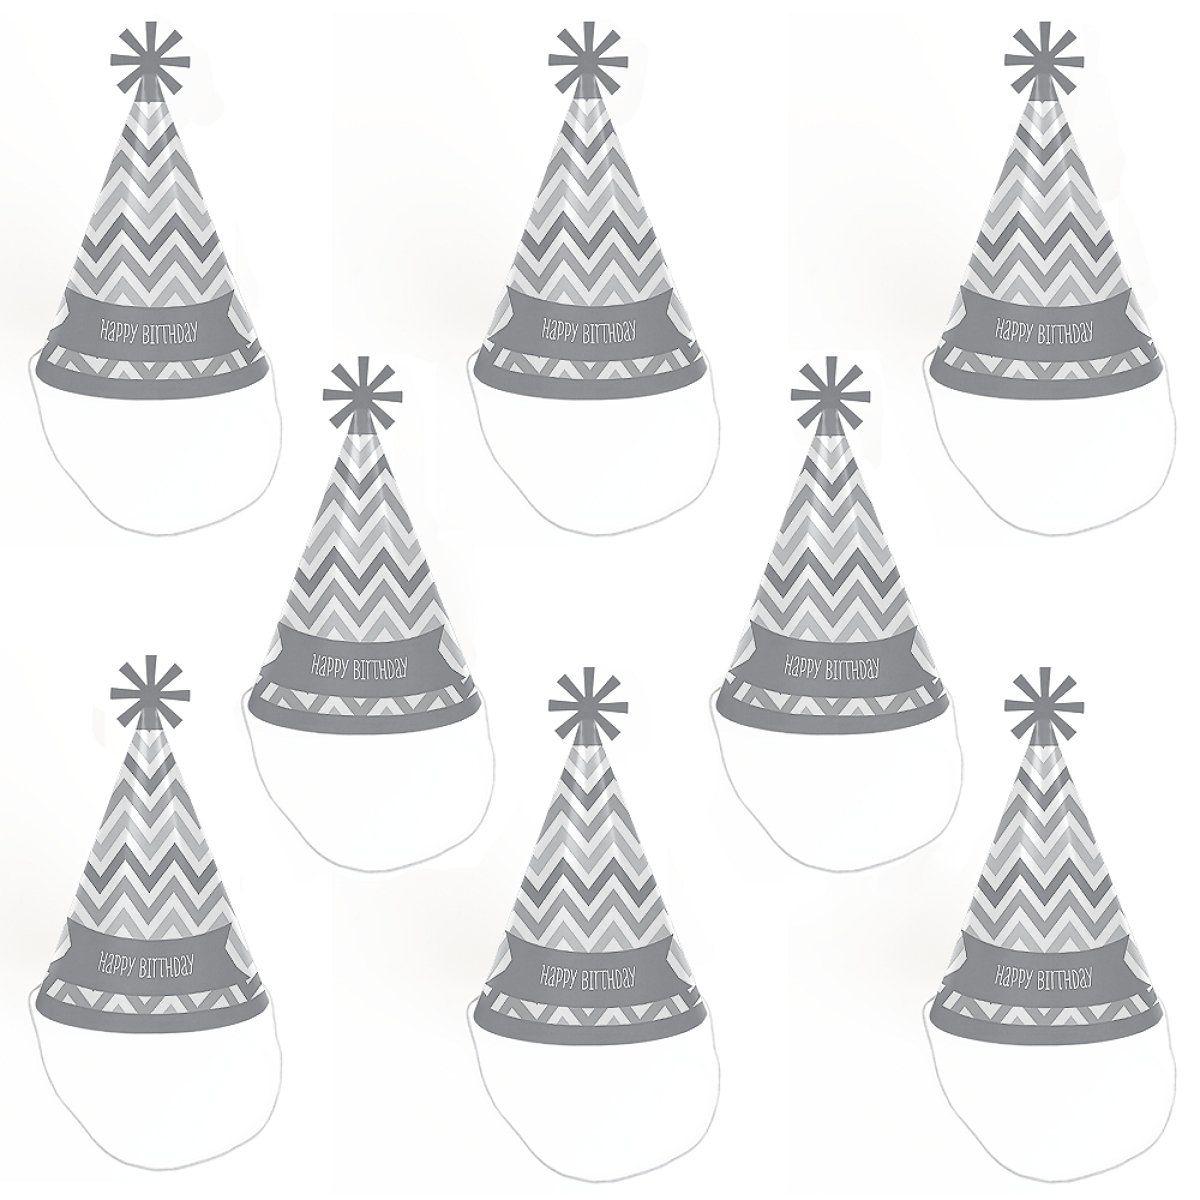 Cone Happy Birthday Party Hats for Kids and Adults Chevron Gray Standard Size Set of 8